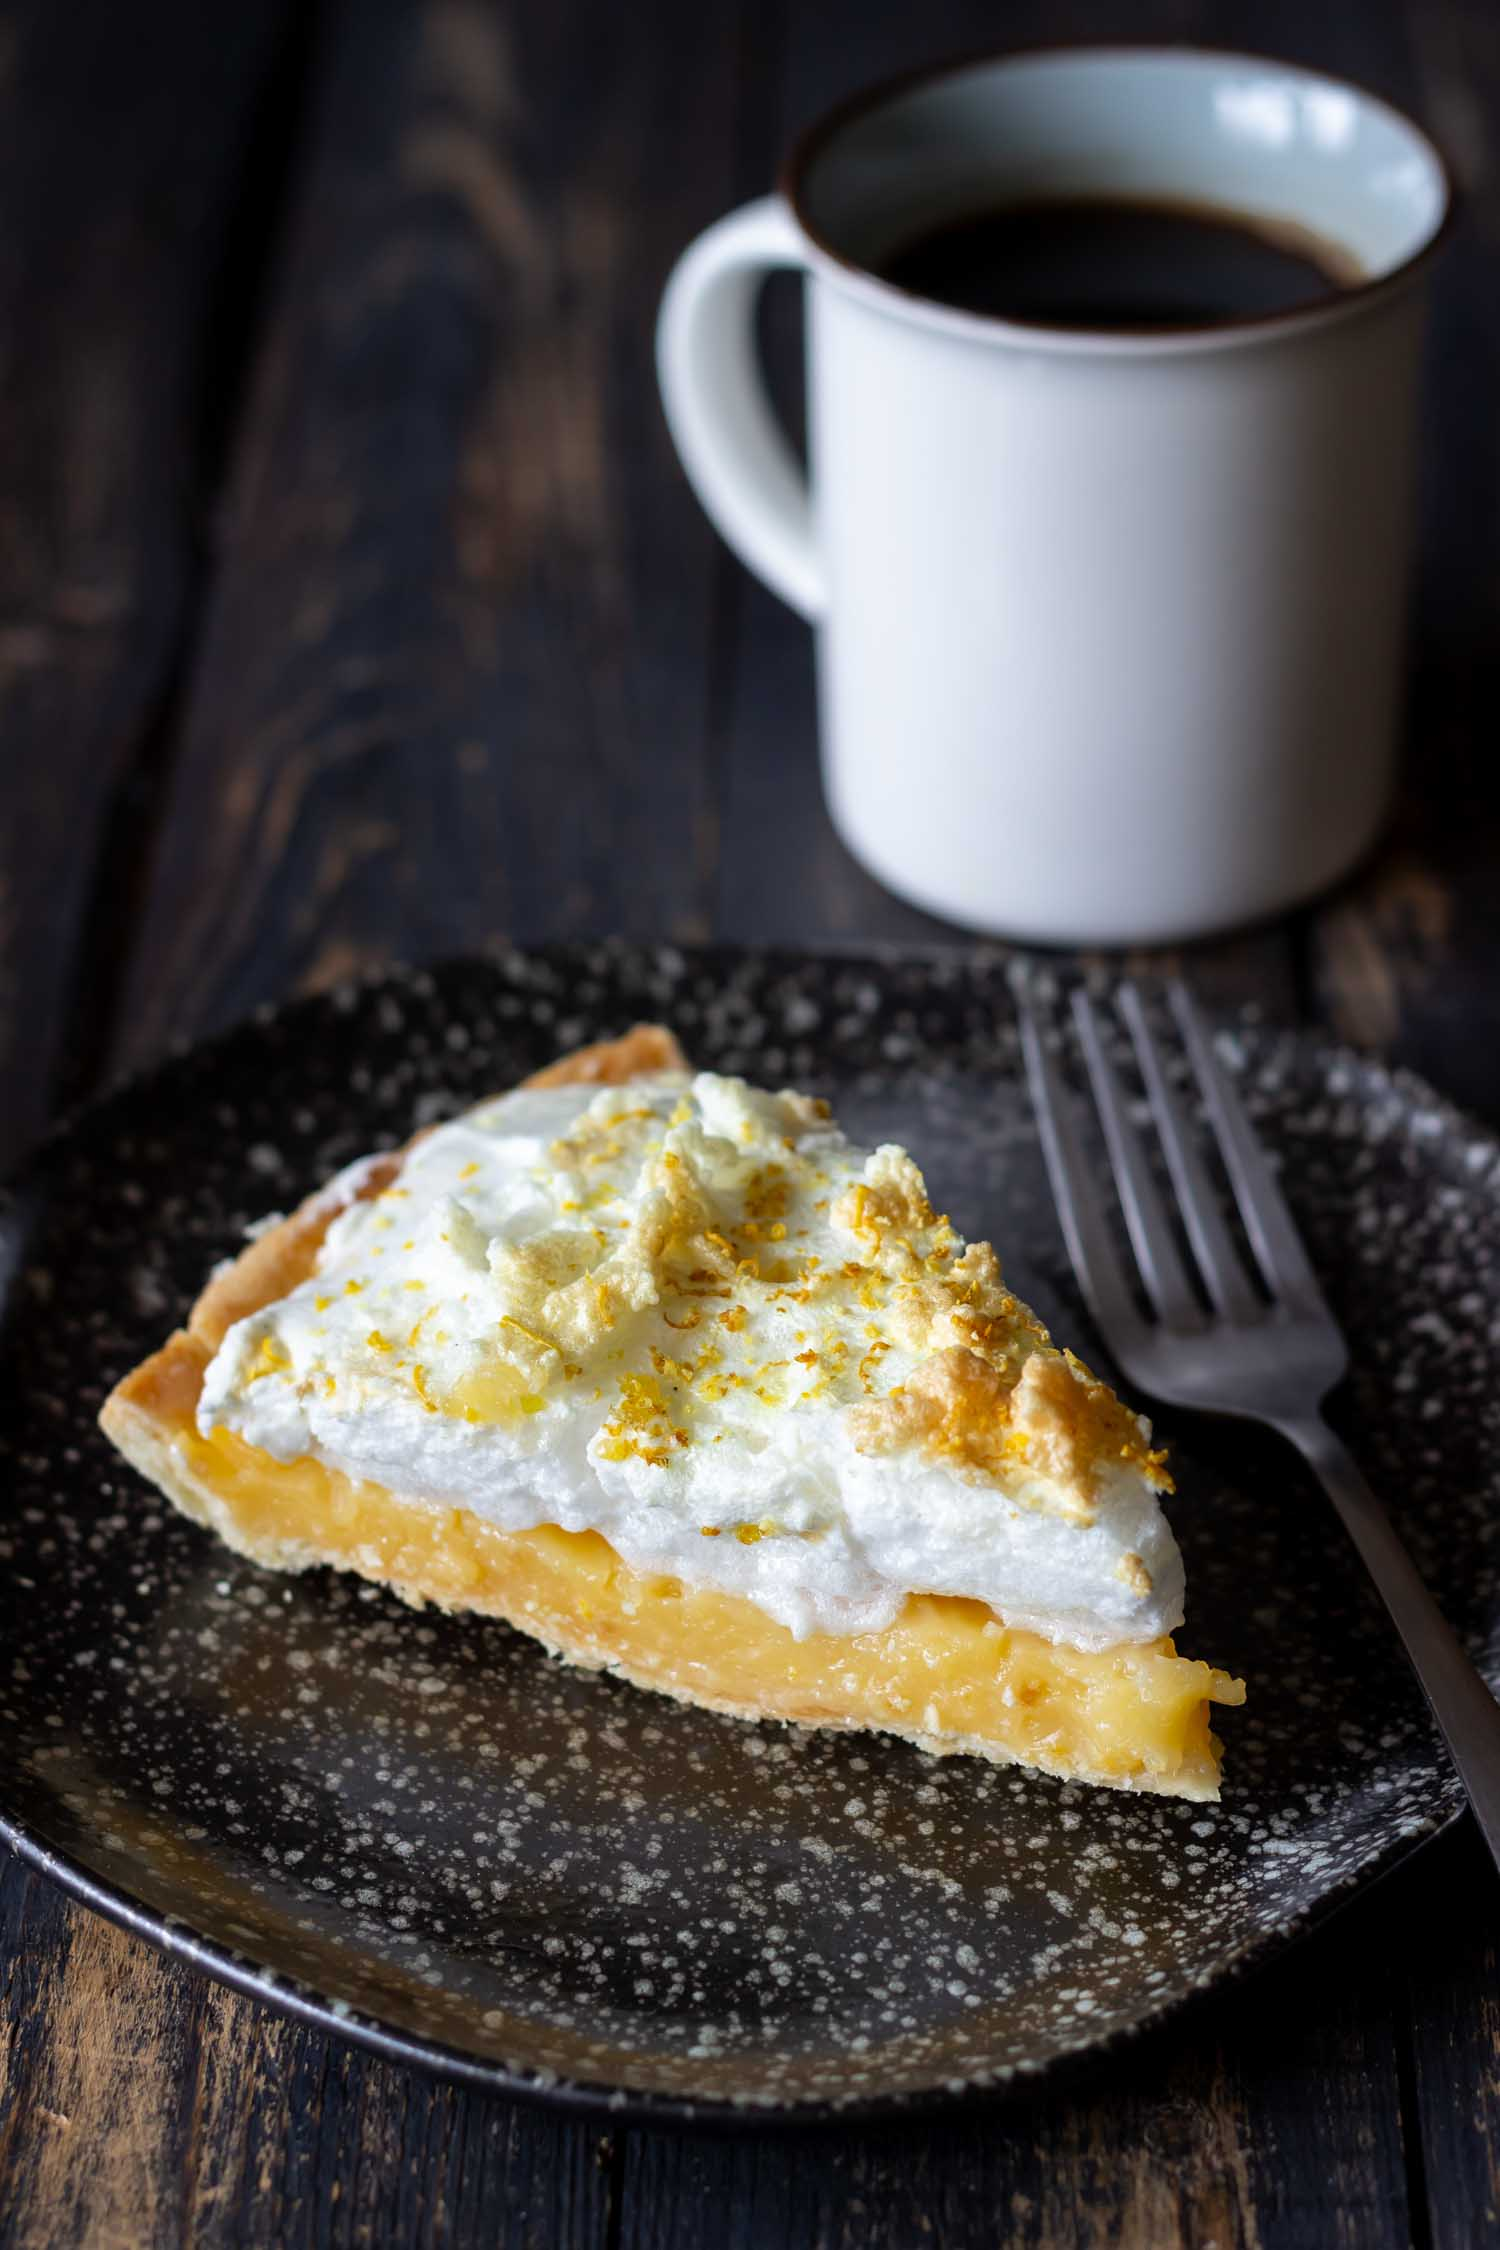 In Peru with lemon meringue on a wooden background. Tart. Bakery products. Dessert. Homemade food.